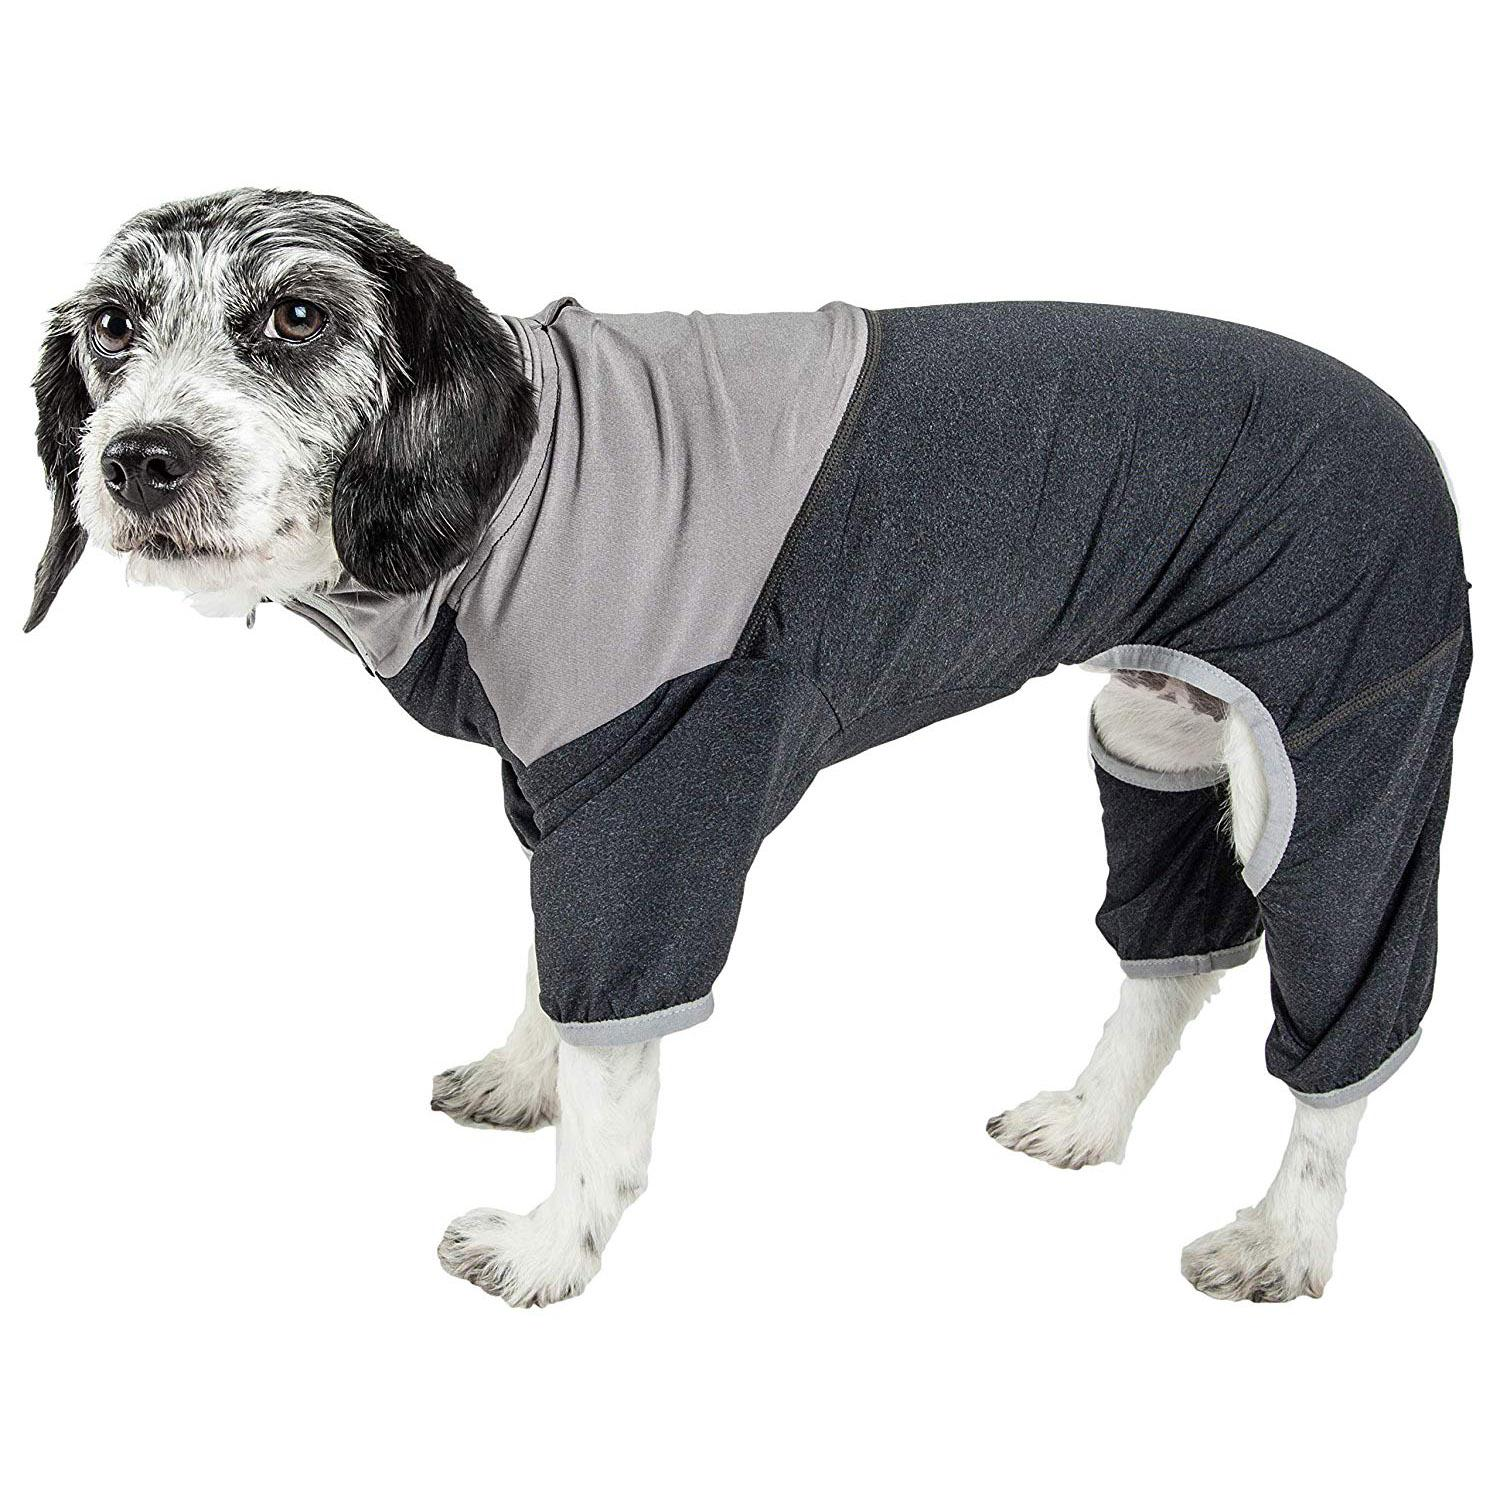 Pet Life ACTIVE 'Embarker' Performance Full-Body Dog Warm Up Suit - Charcoal and Grey